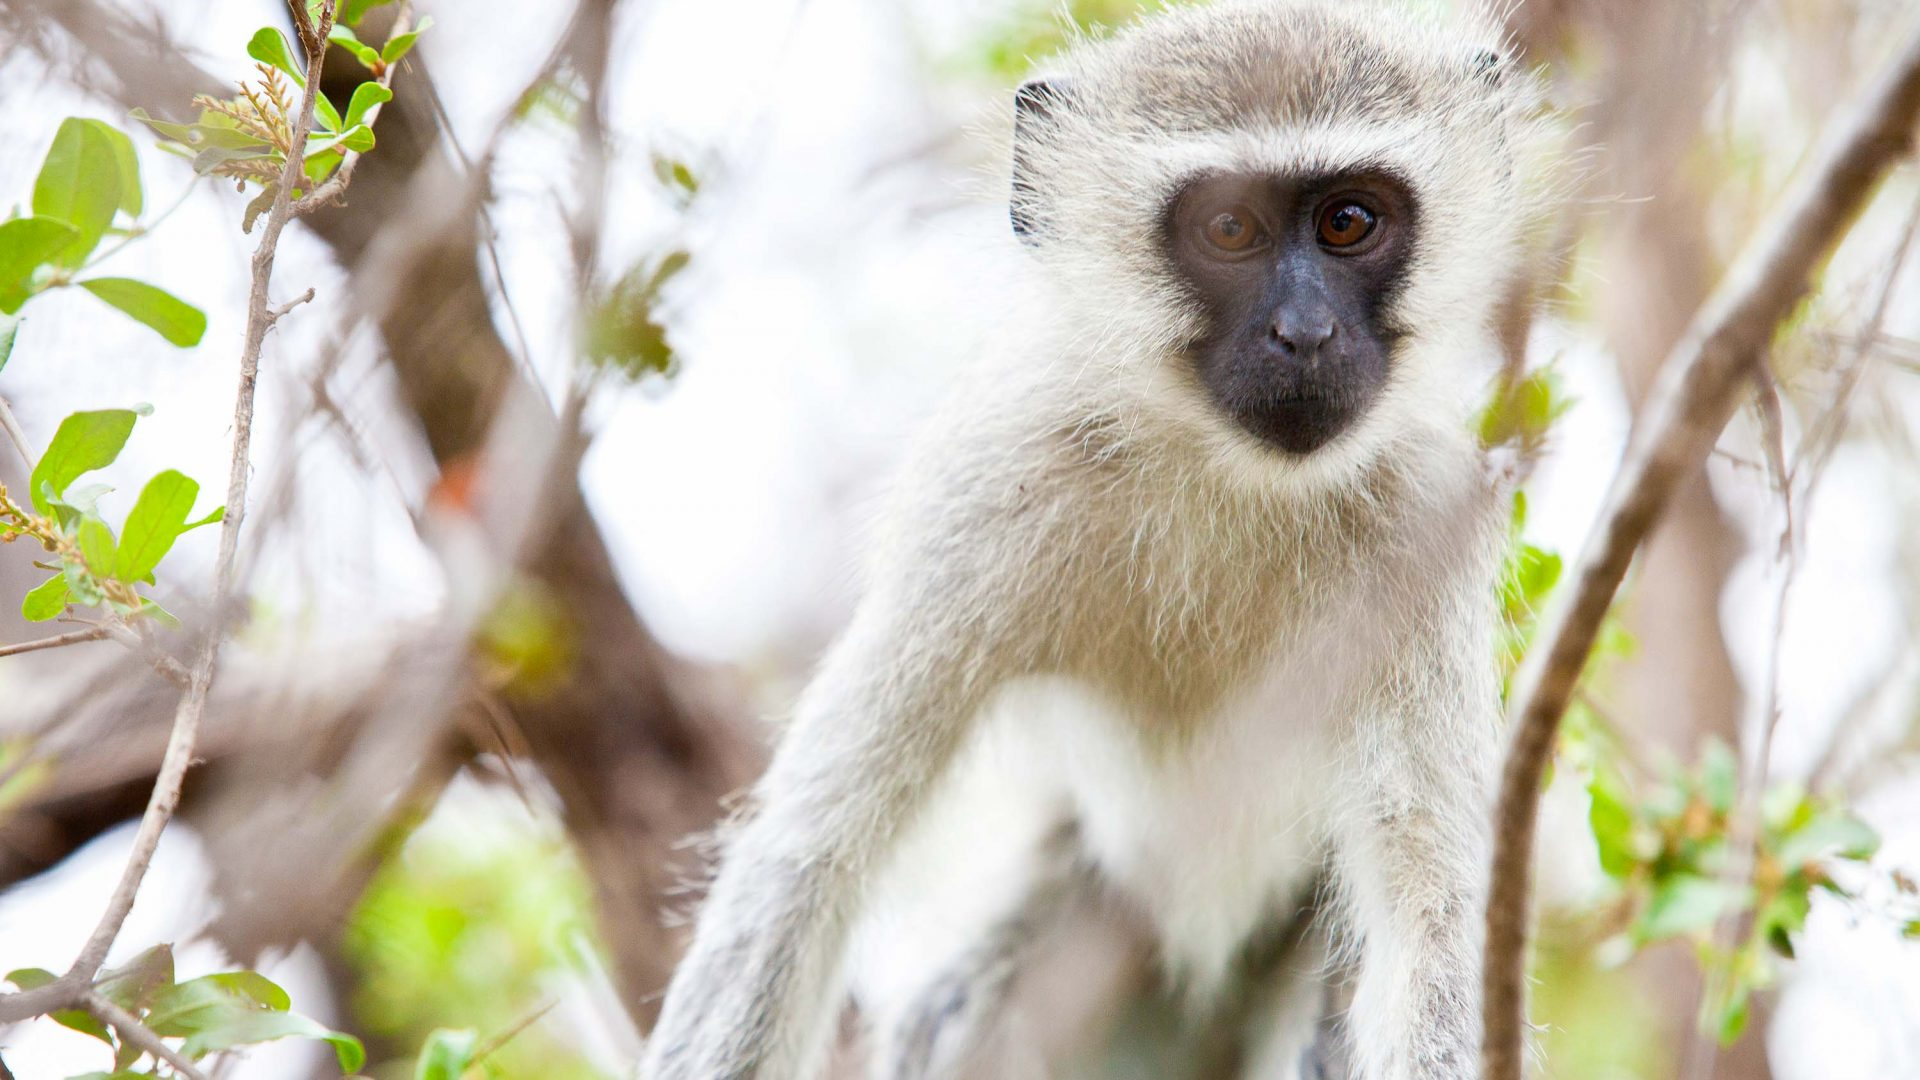 A vervet monkey in Balule Nature Reserve in South Africa.